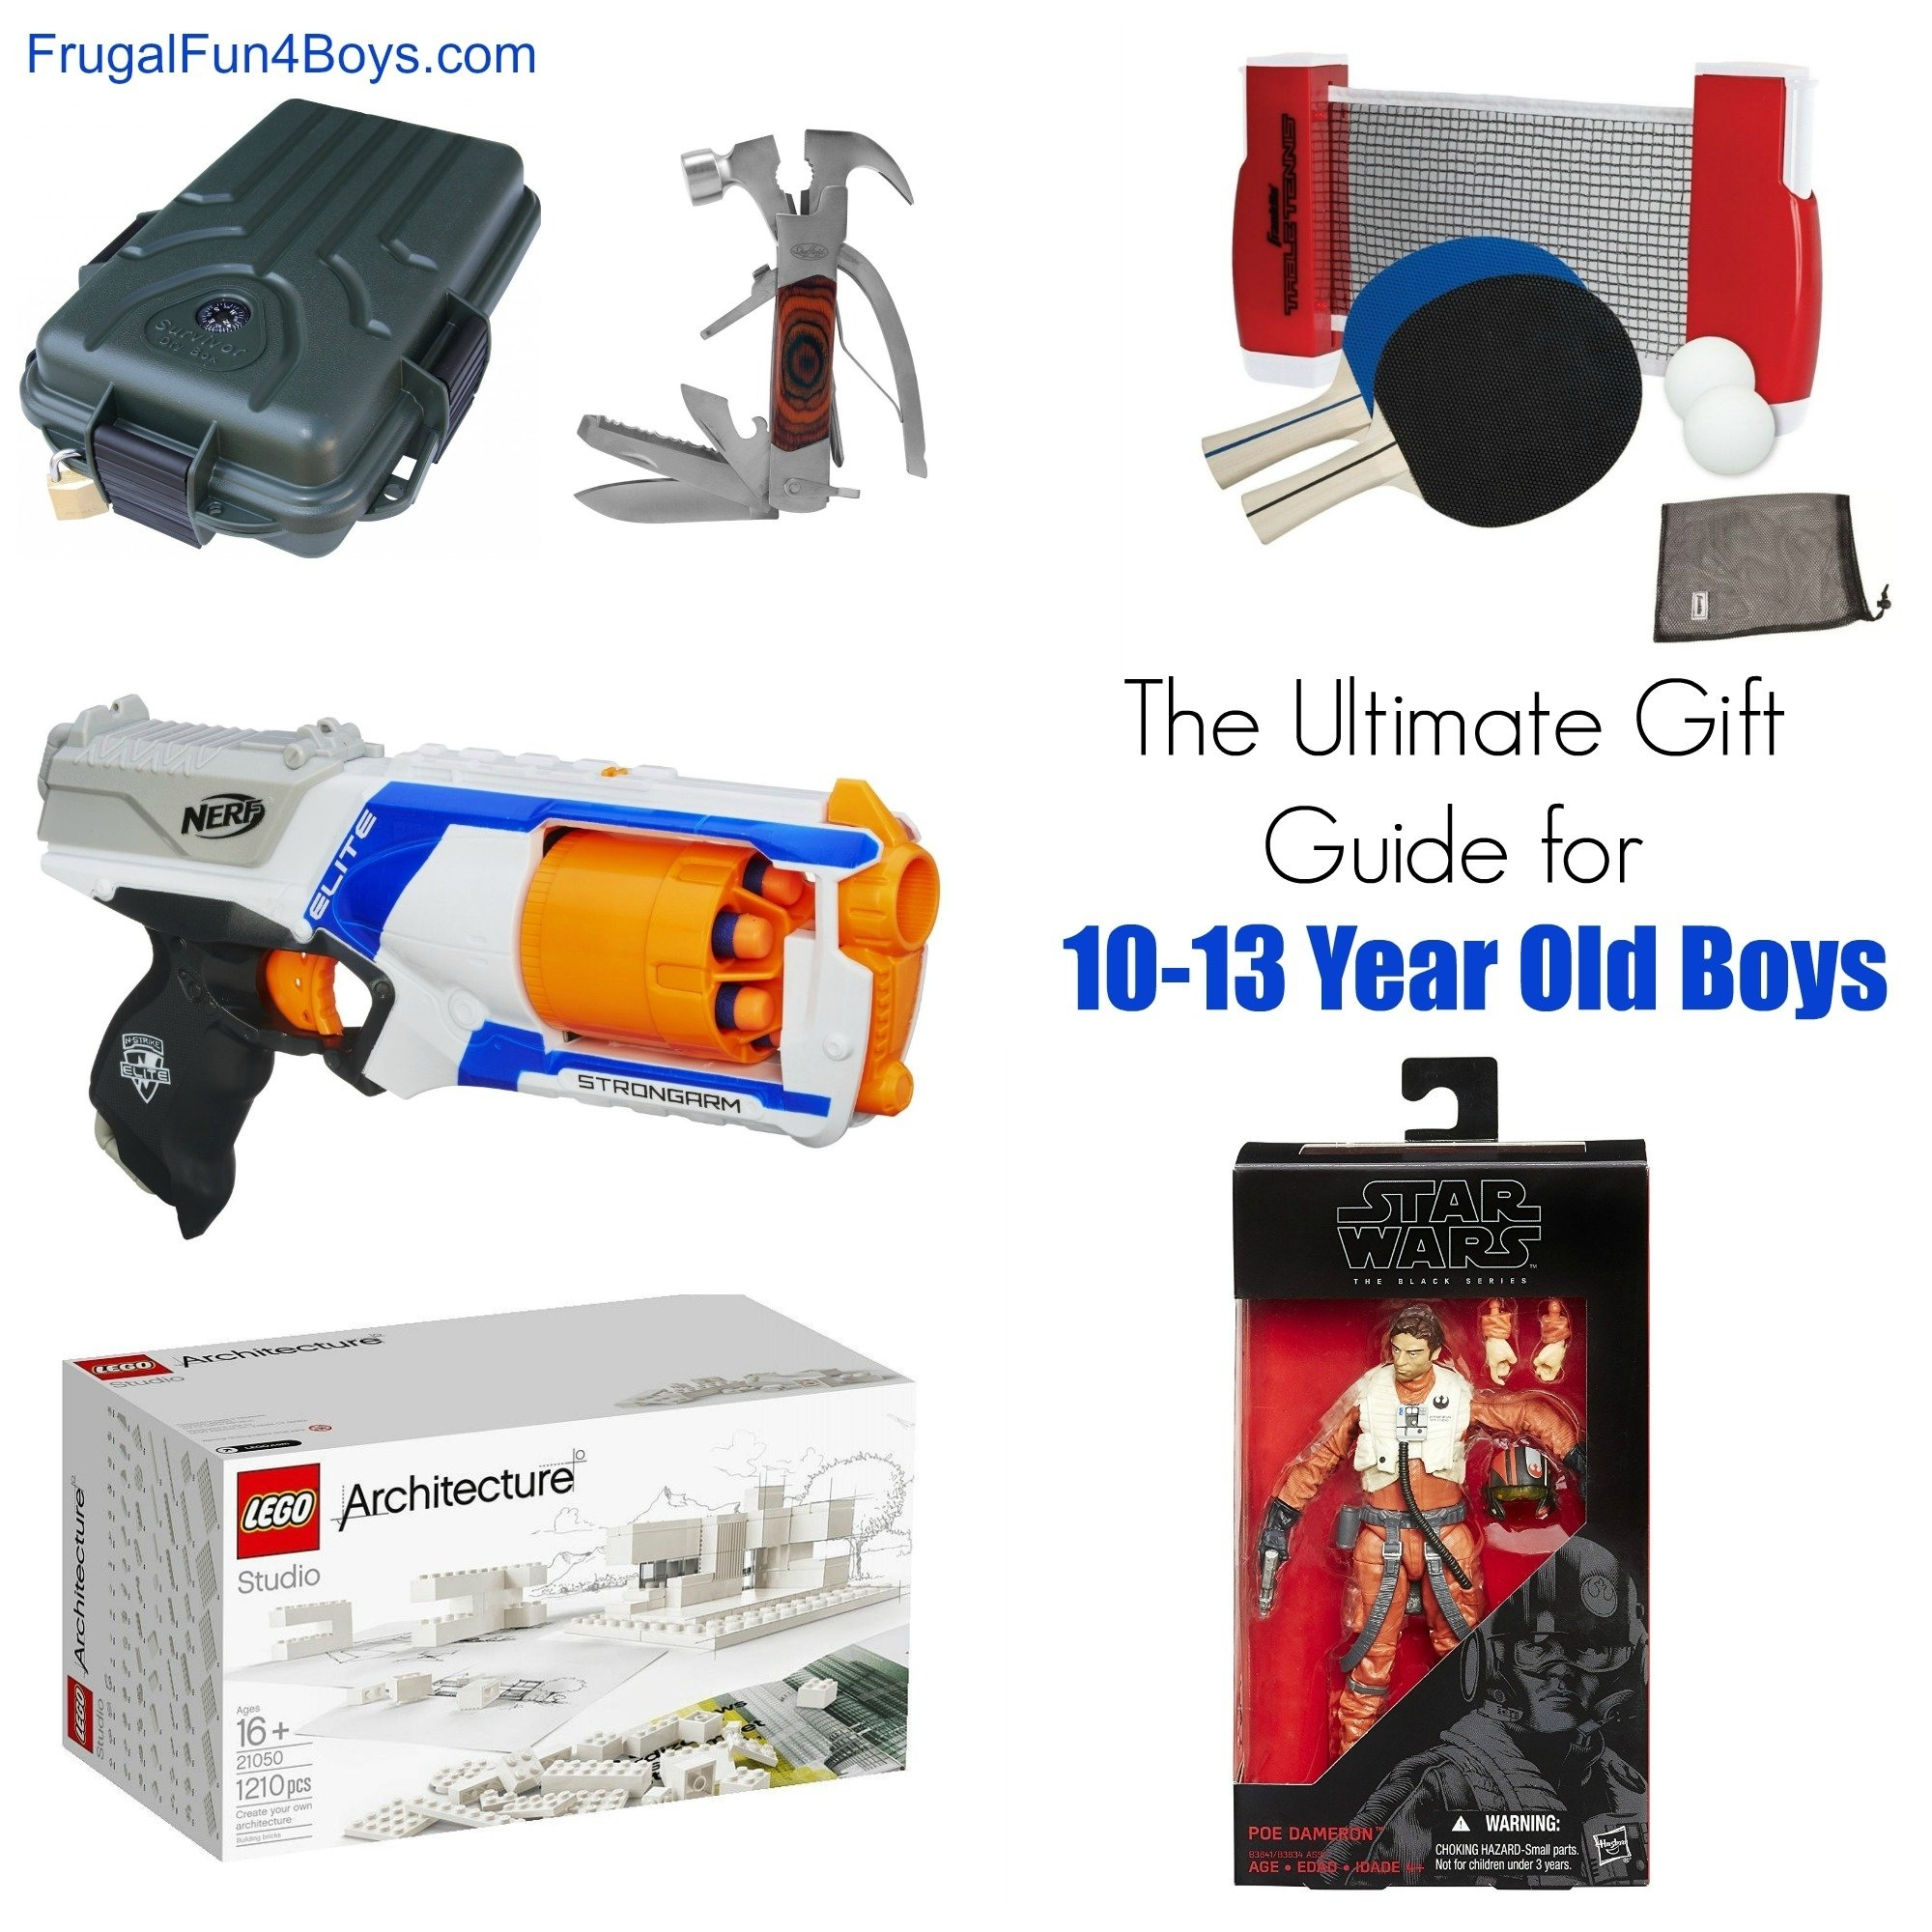 10 Fashionable Christmas Ideas For 13 Year Old Boy